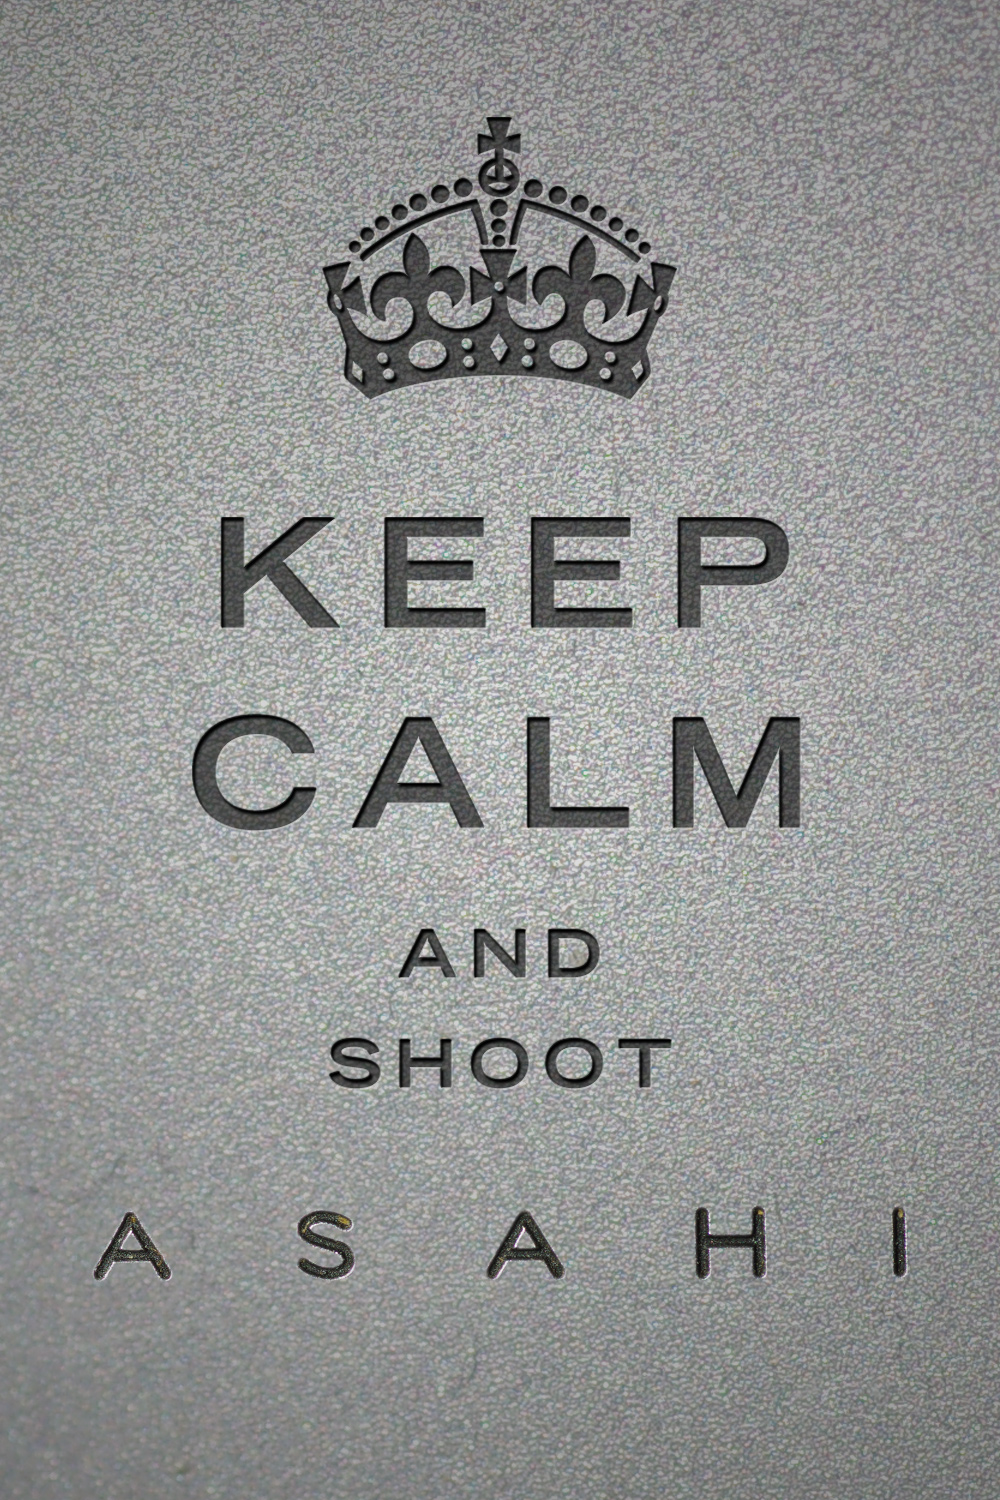 Keep-Calm-and-shoot-asahi